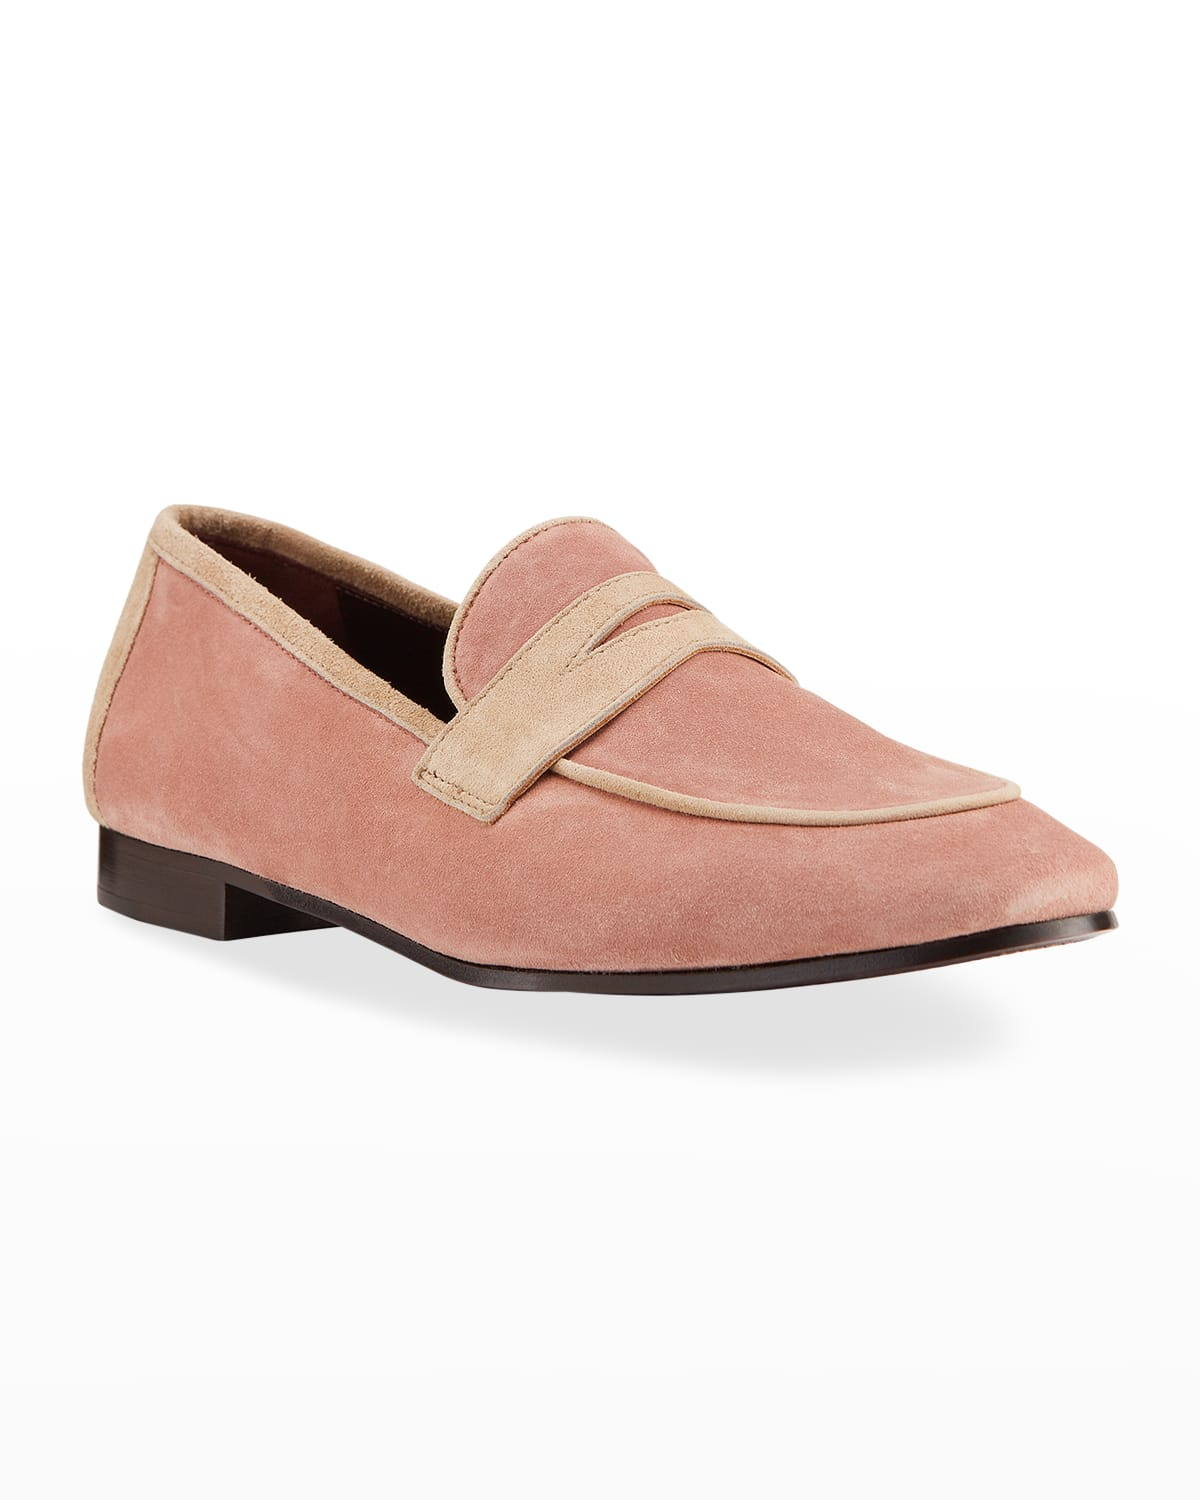 Bicolor Suede Penny Loafers